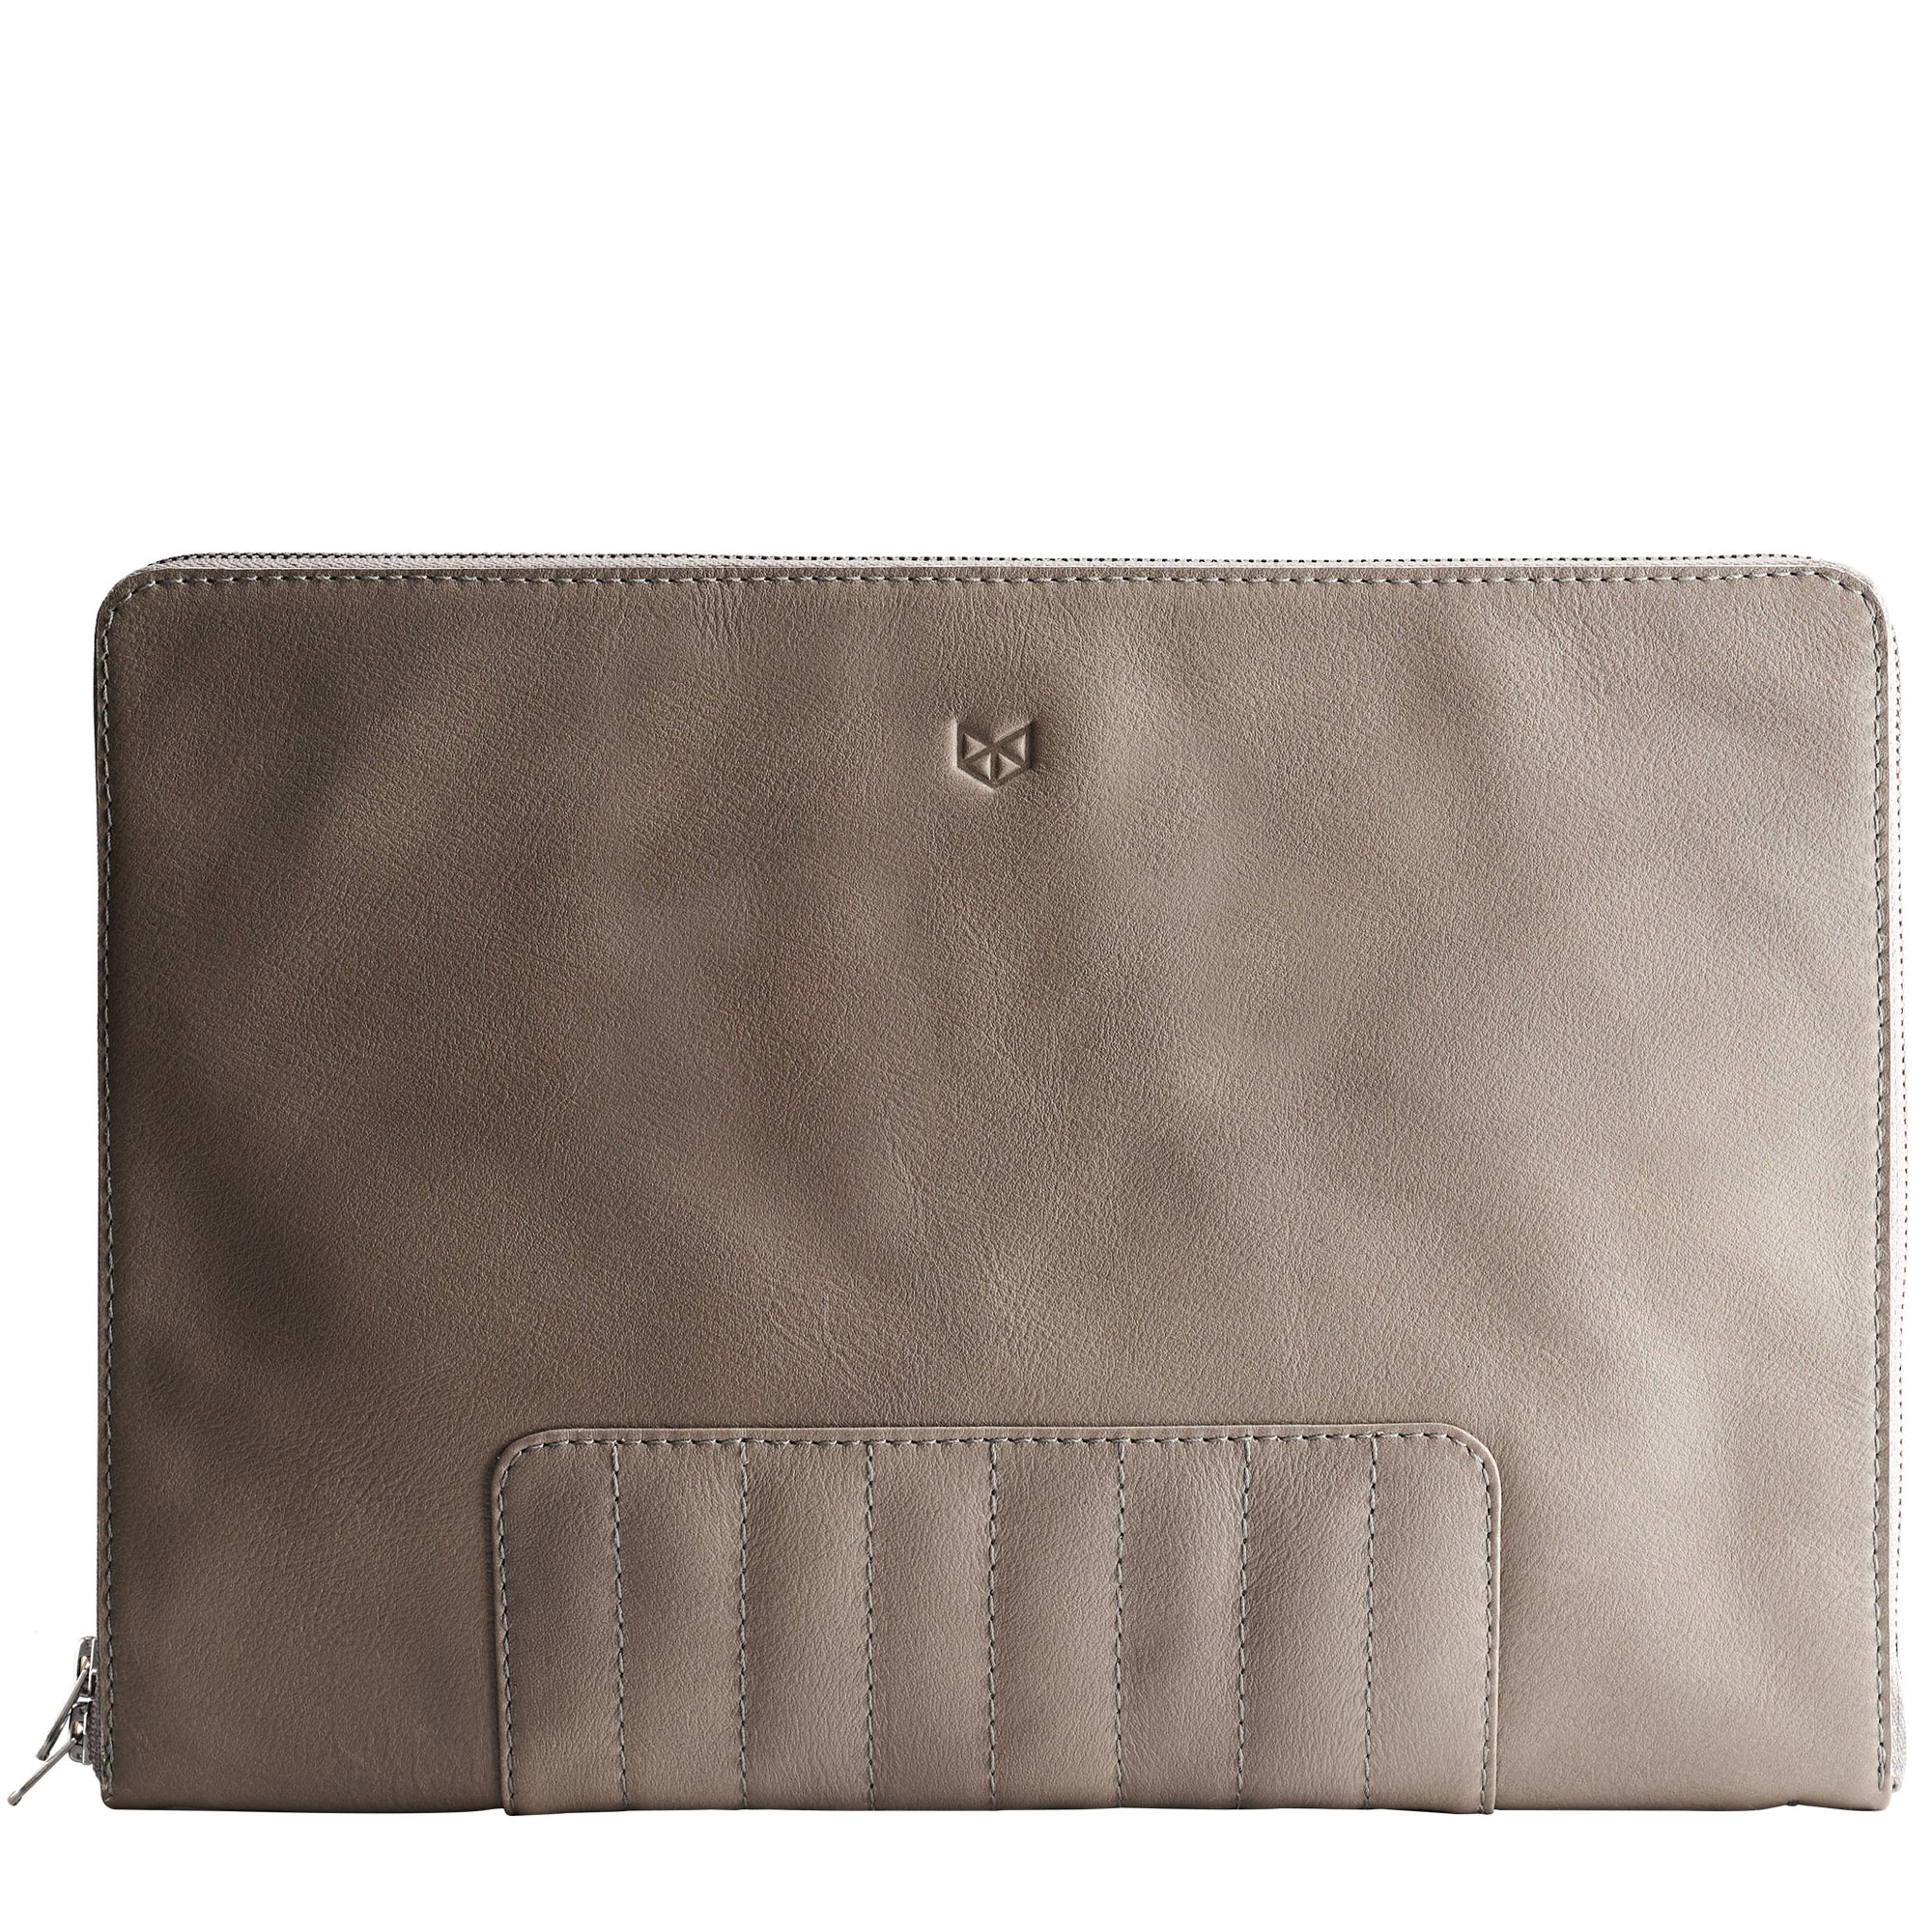 Cover. Grey Leather Laptop Portfolio Case. Laptops & devices Bag.